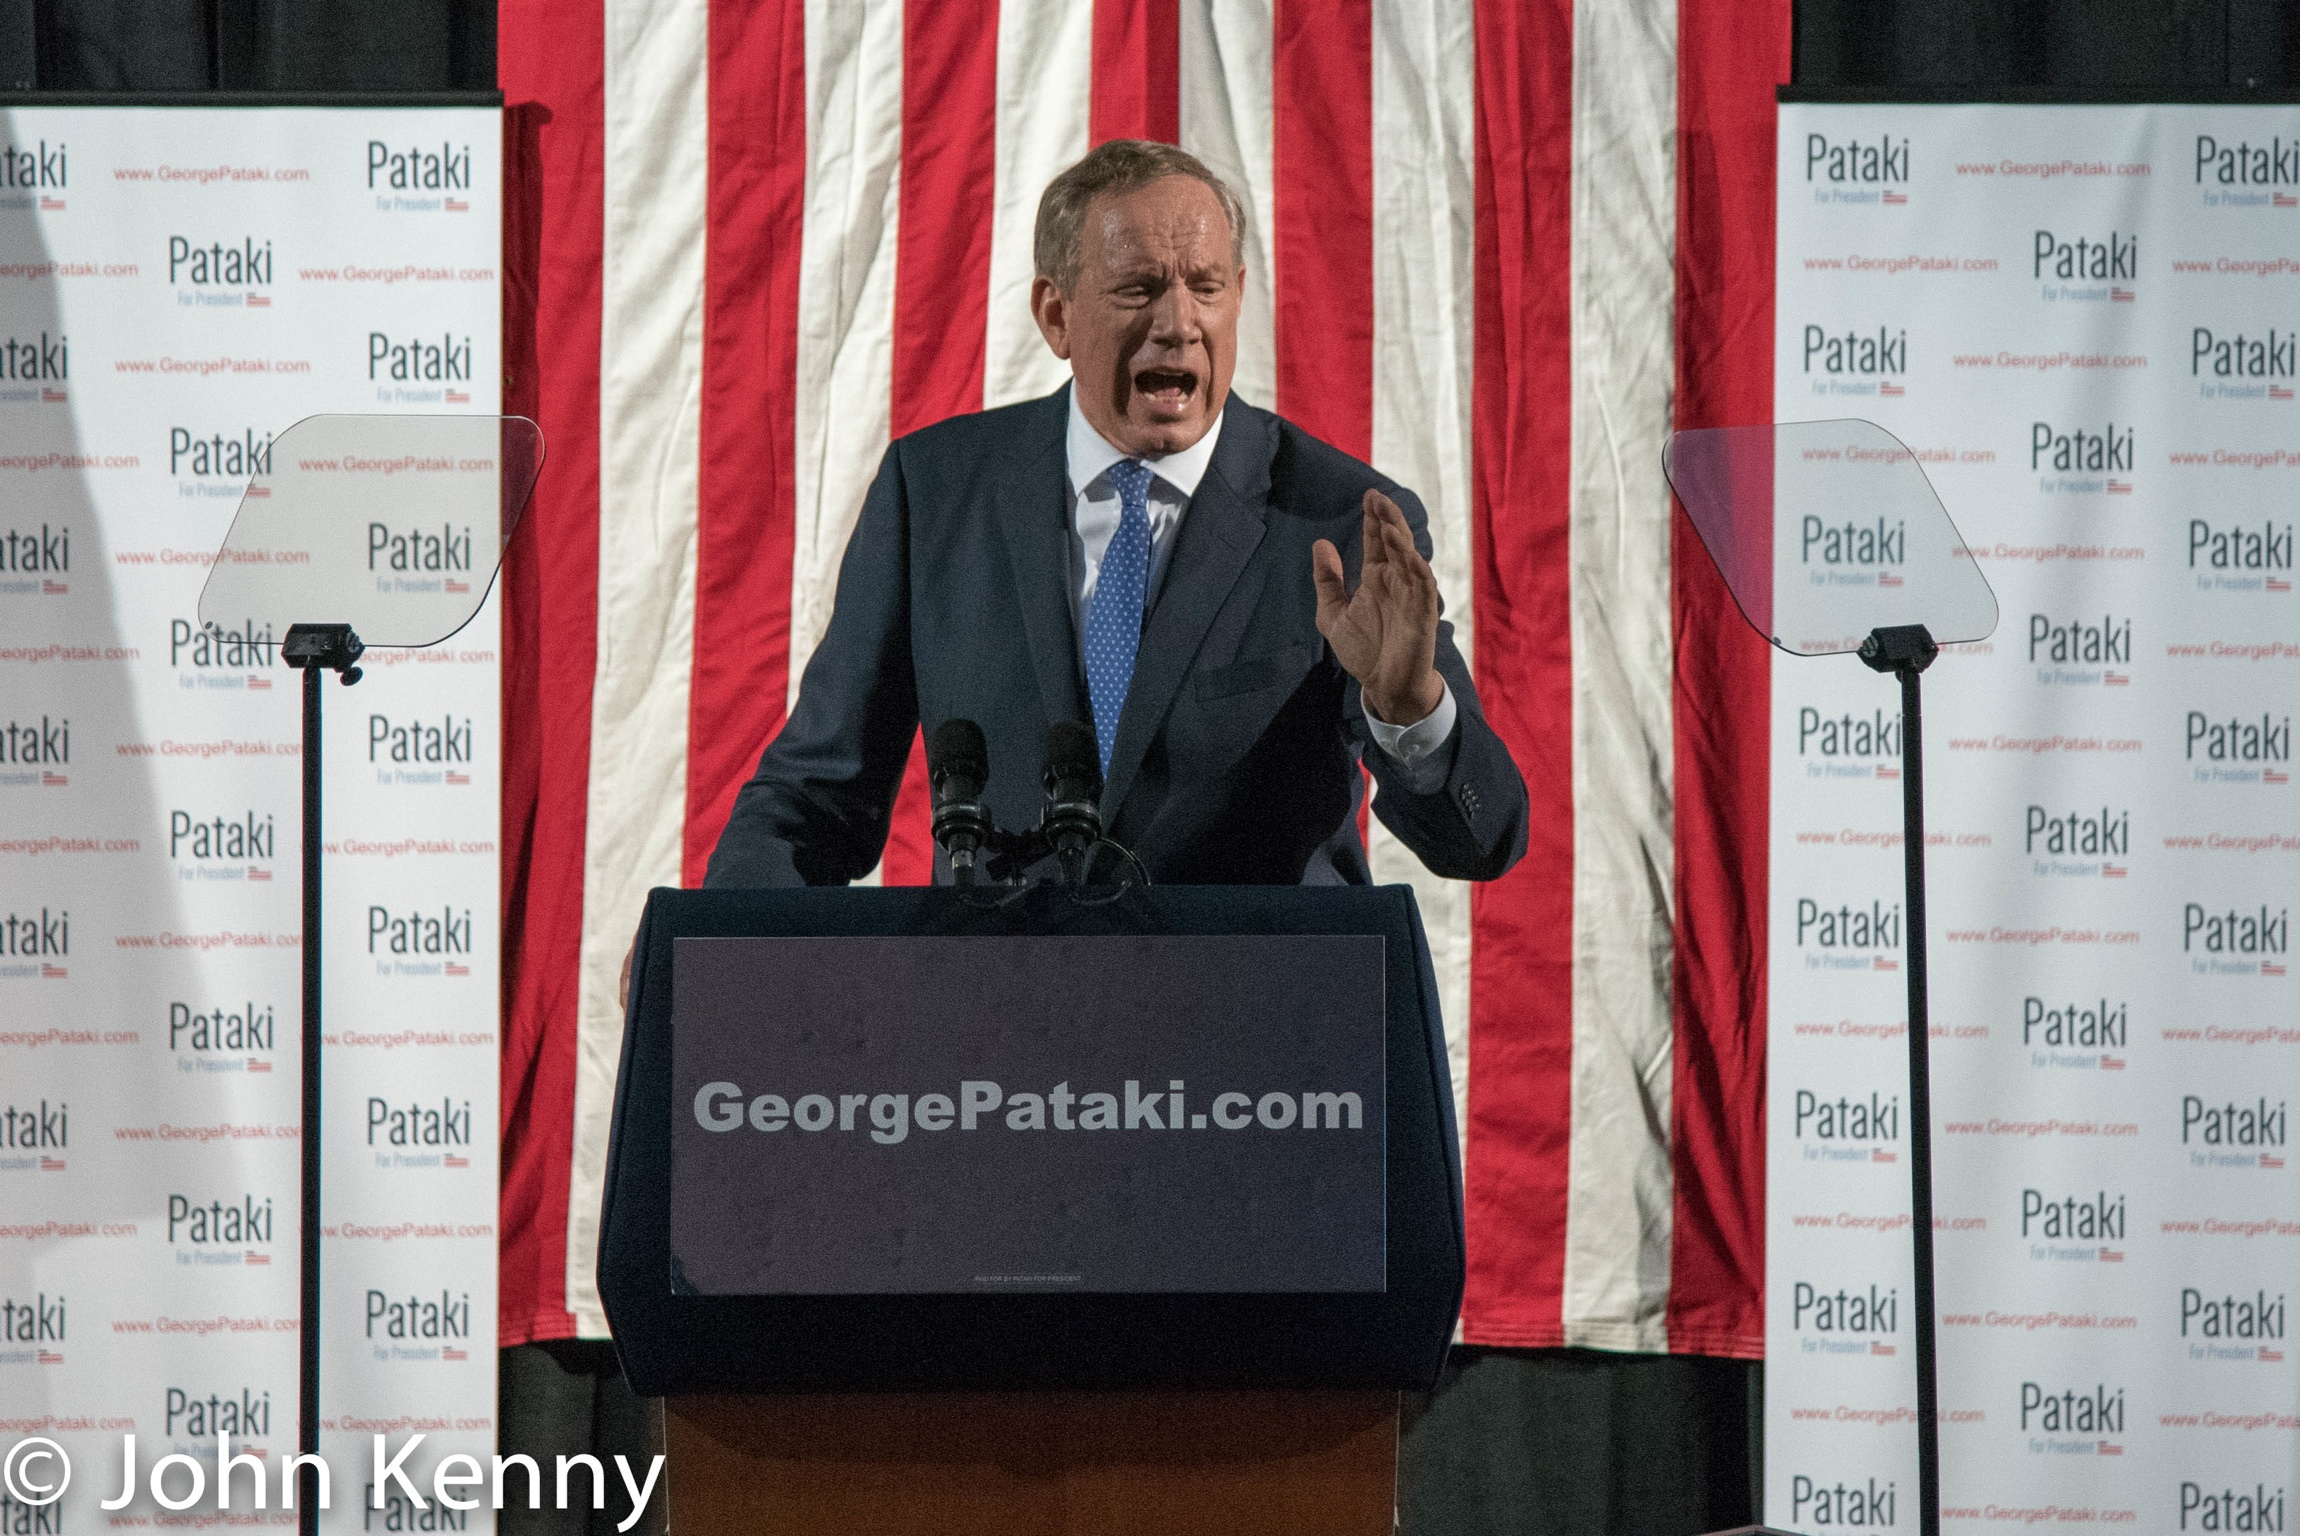 Pataki Speaking - Front Exeter 5-28-15